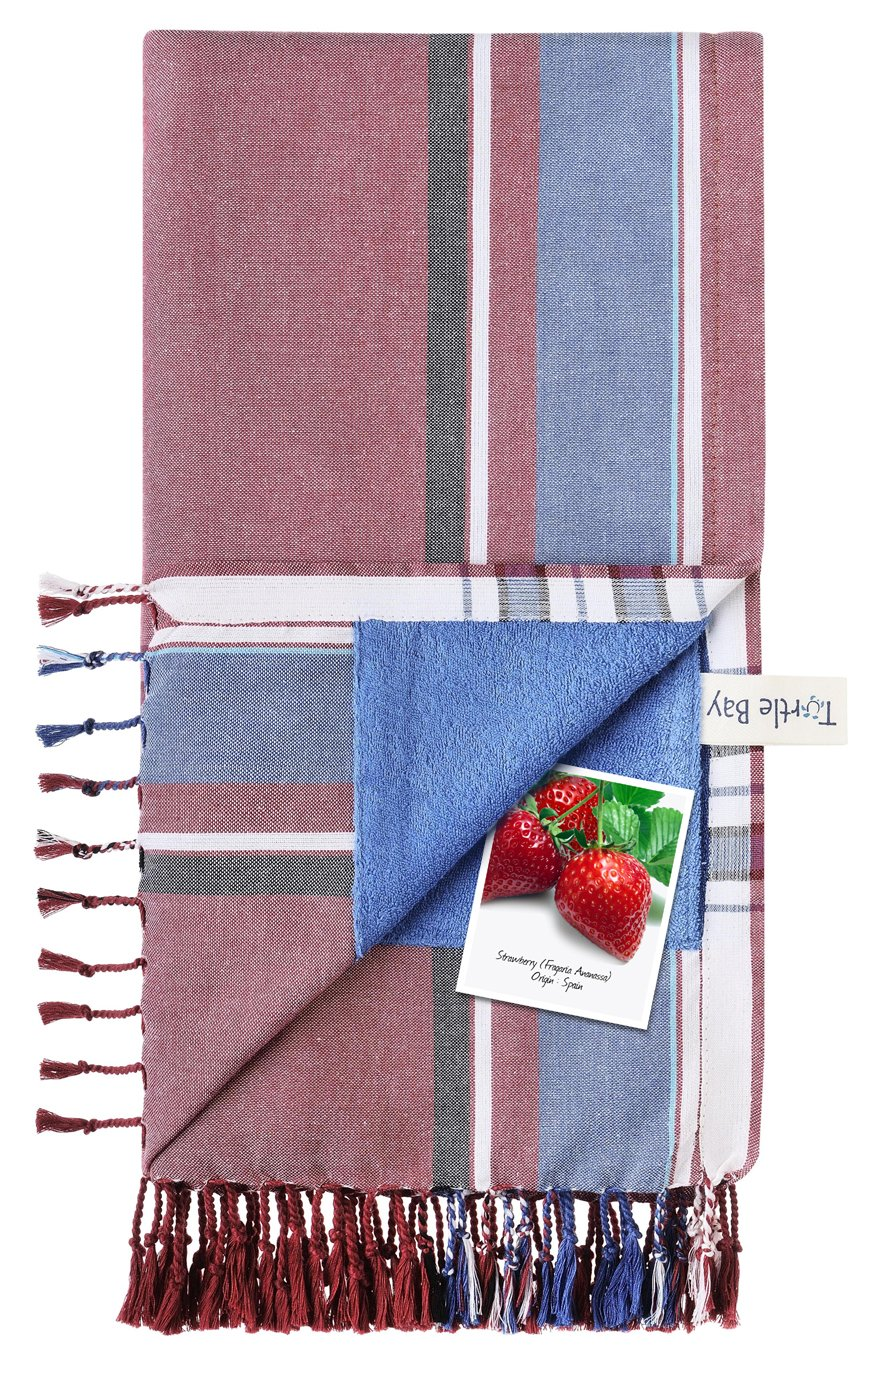 Turtle Bay - Toalla de playa / Pareo - Toalla de baño - Kikoy Towel Ukunda - Color : Strawberry - Tamaño : 95 x 170 cms: Amazon.es: Hogar